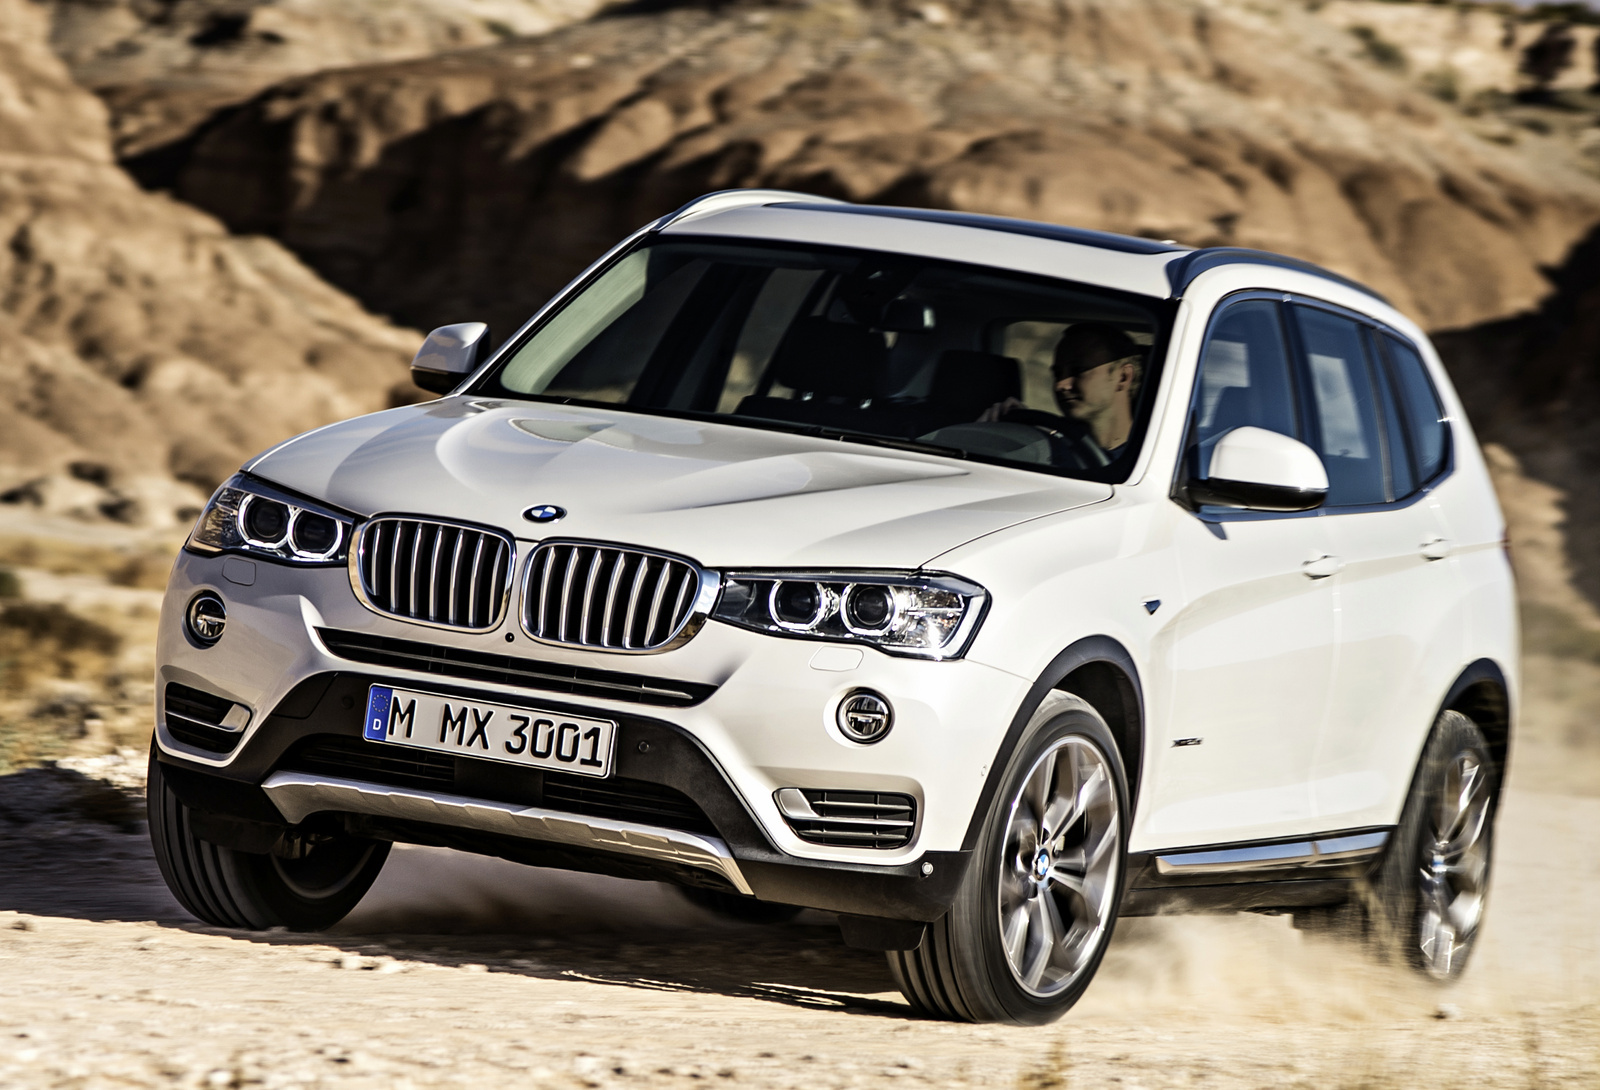 2015 bmw x3 front quarter view exterior manufacturer gallery_worthy